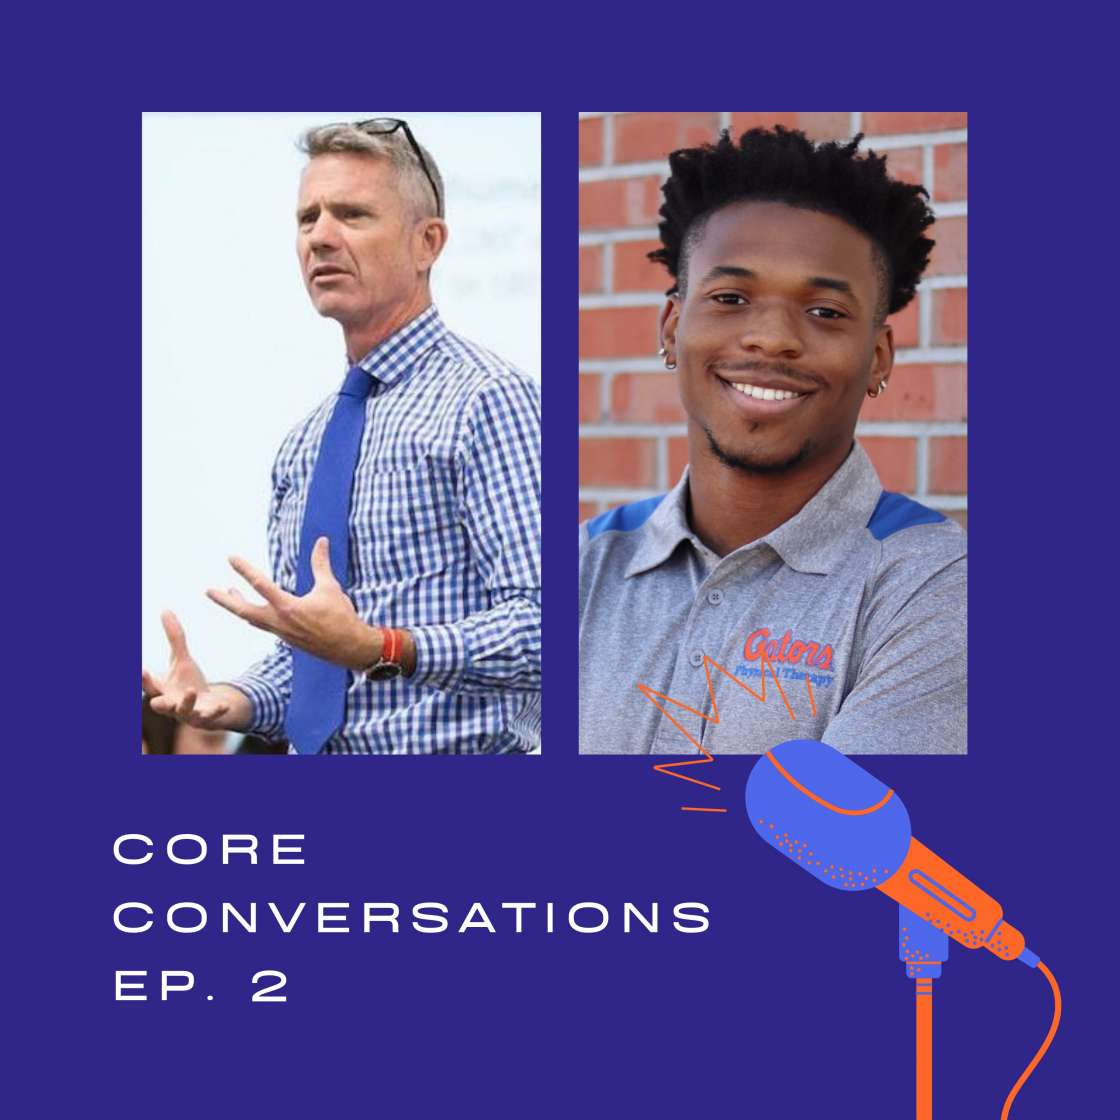 Graphic of the Core Conversations podcast series, featuring photos of Dr. Mark Bishop and UF DPT student Justus Norman